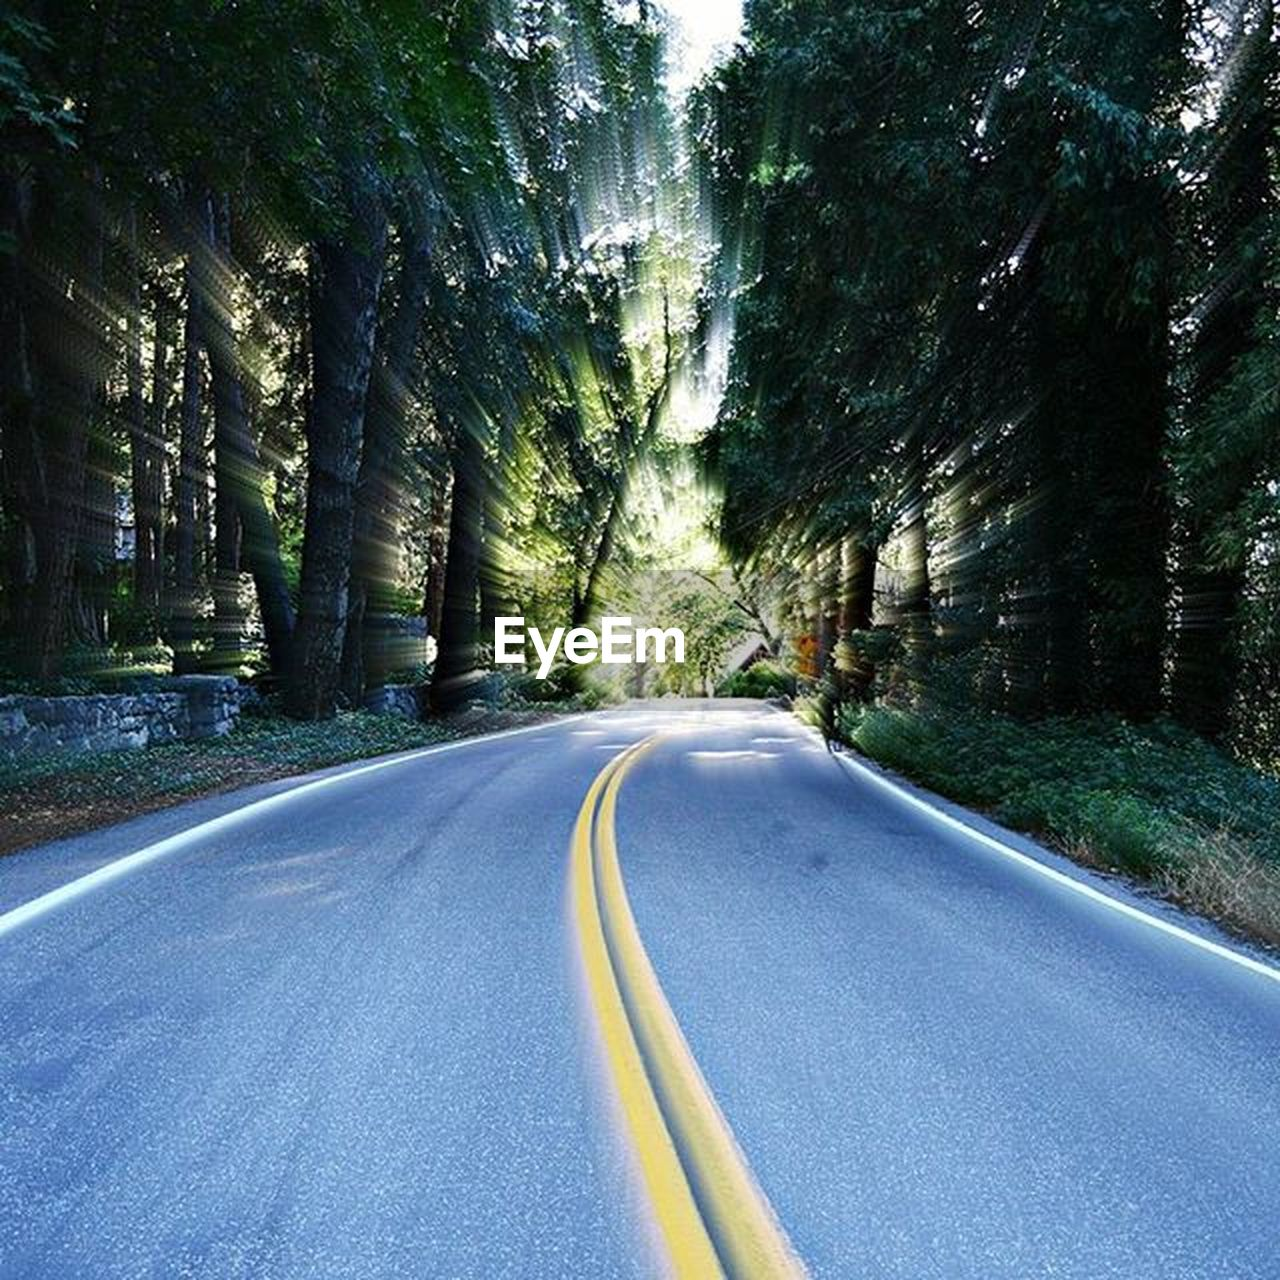 road, tree, the way forward, transportation, nature, day, no people, outdoors, scenics, beauty in nature